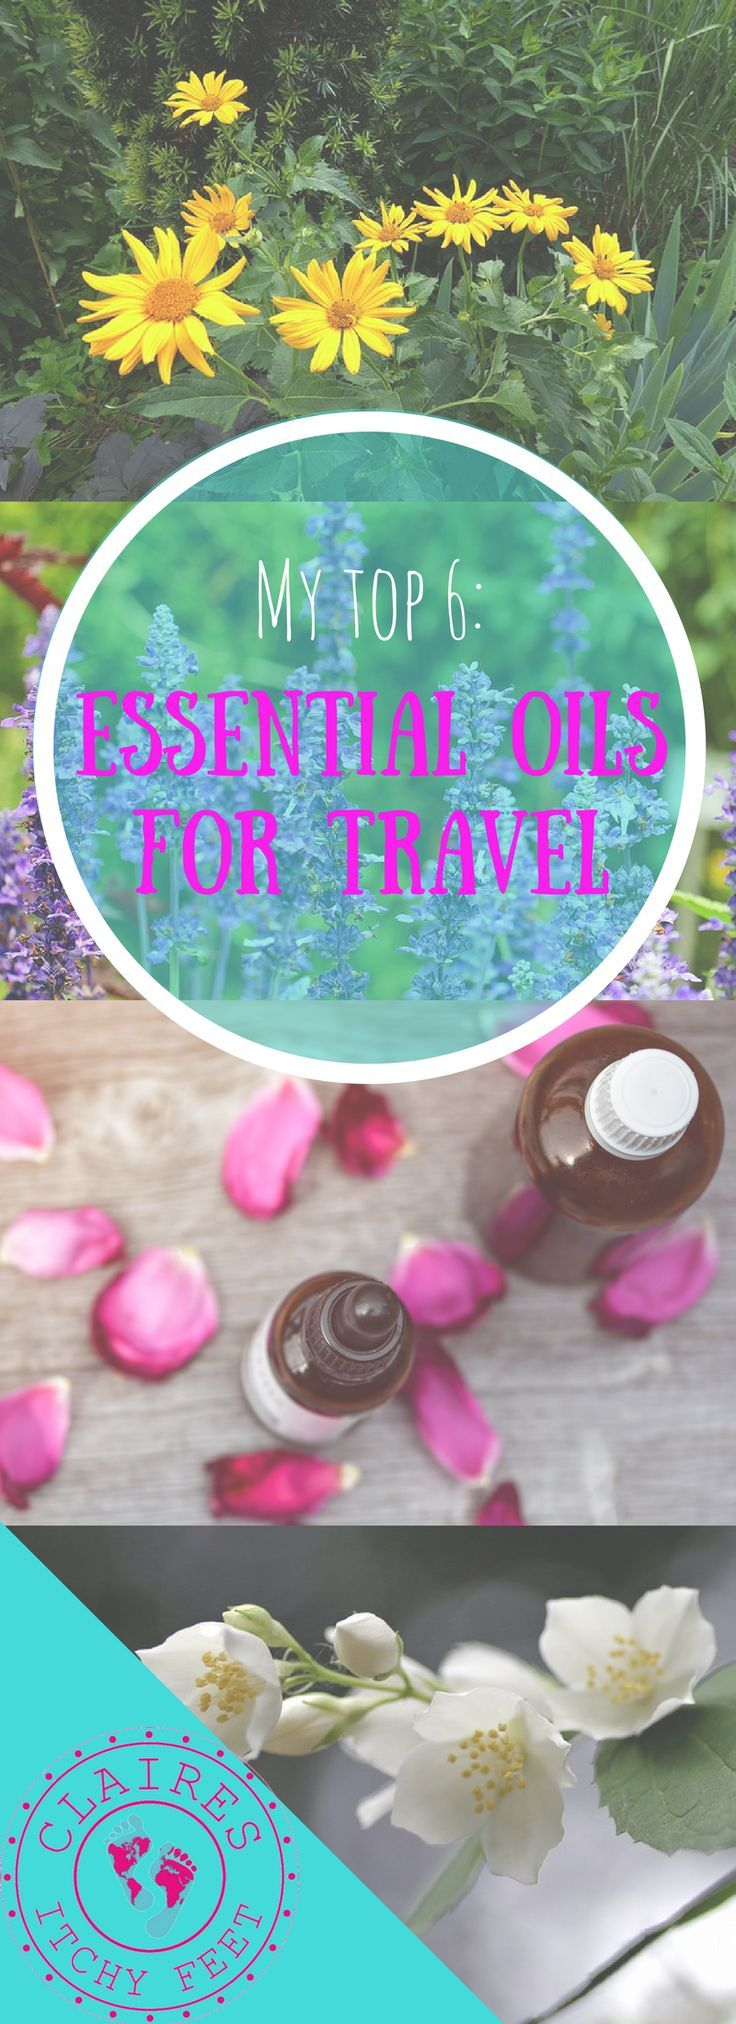 There are a few things that keep me sane while traveling. One of them is my collection of essential oils! Whether you are taking a weekend break or are long-term backpacking. There are a few must-have essential oils you should make sure you pack.